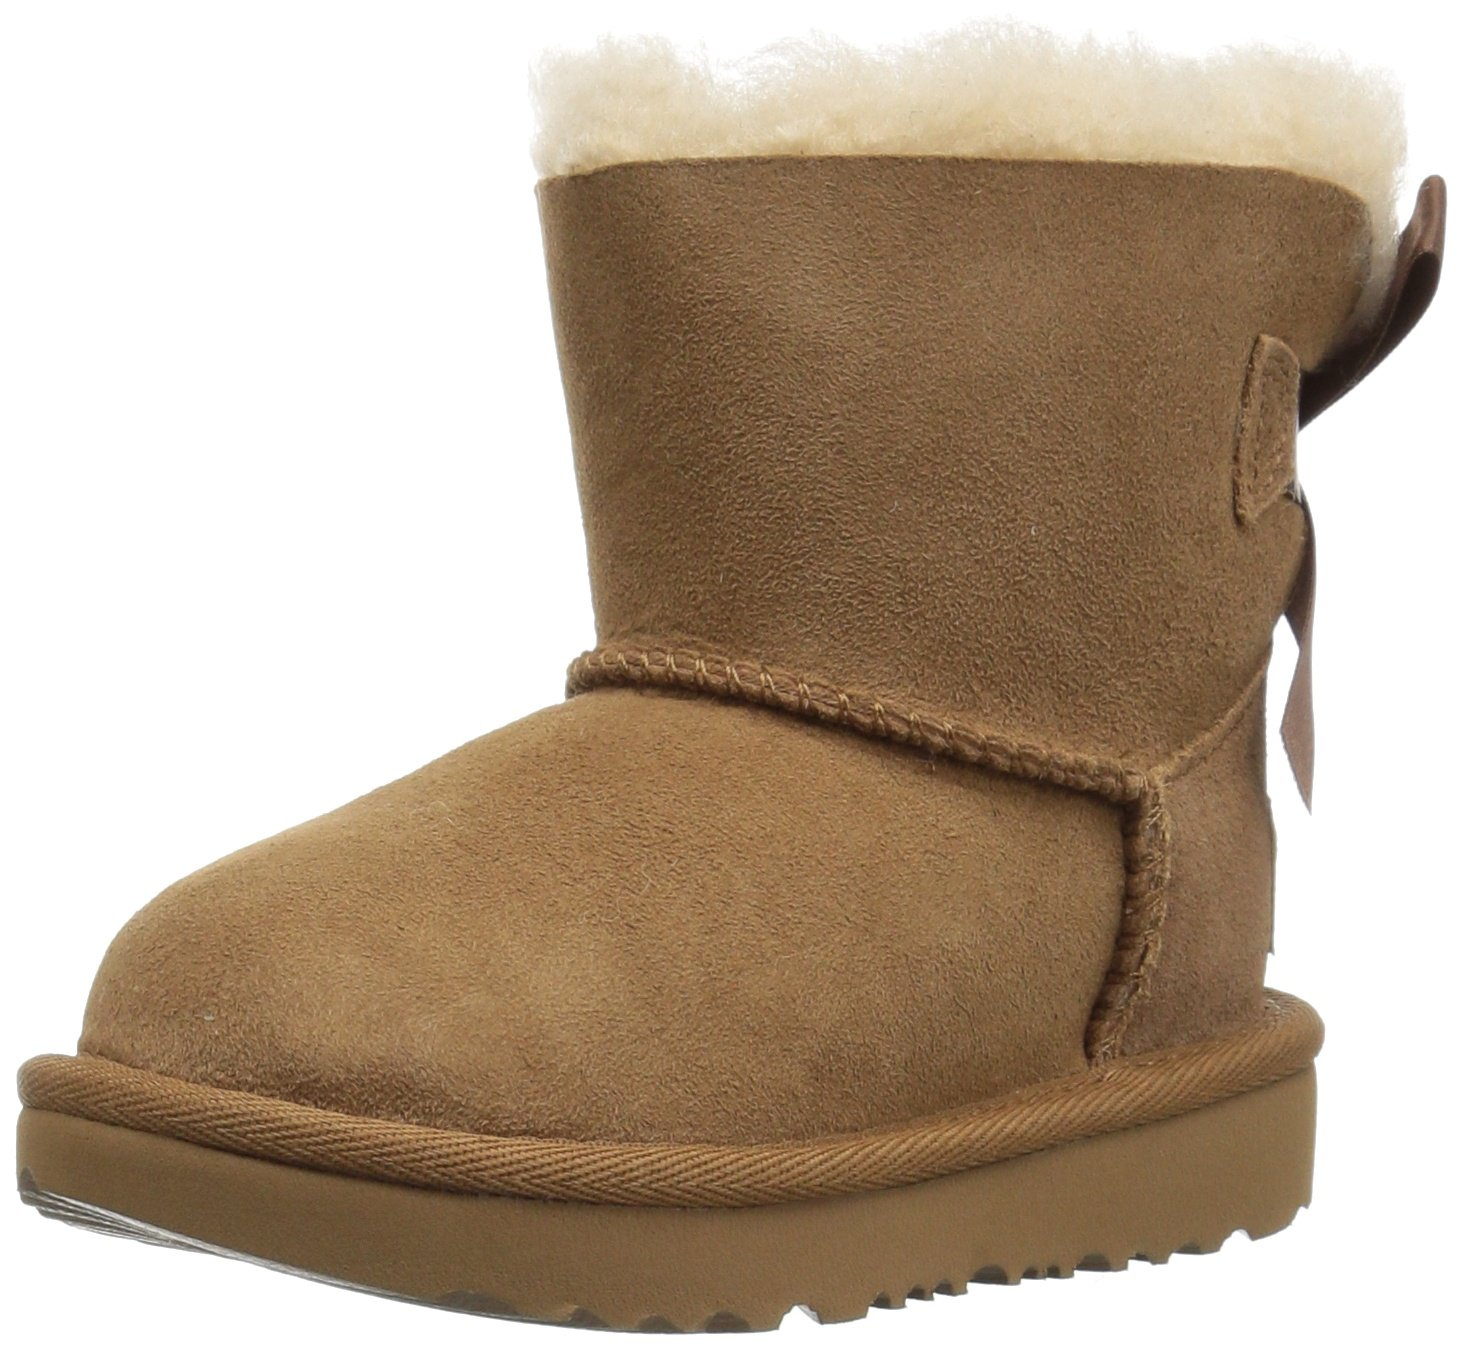 UGG Girls T Mini Bailey Bow II Pull-On Boot, Chestnut, 10 M US Toddler by UGG (Image #1)